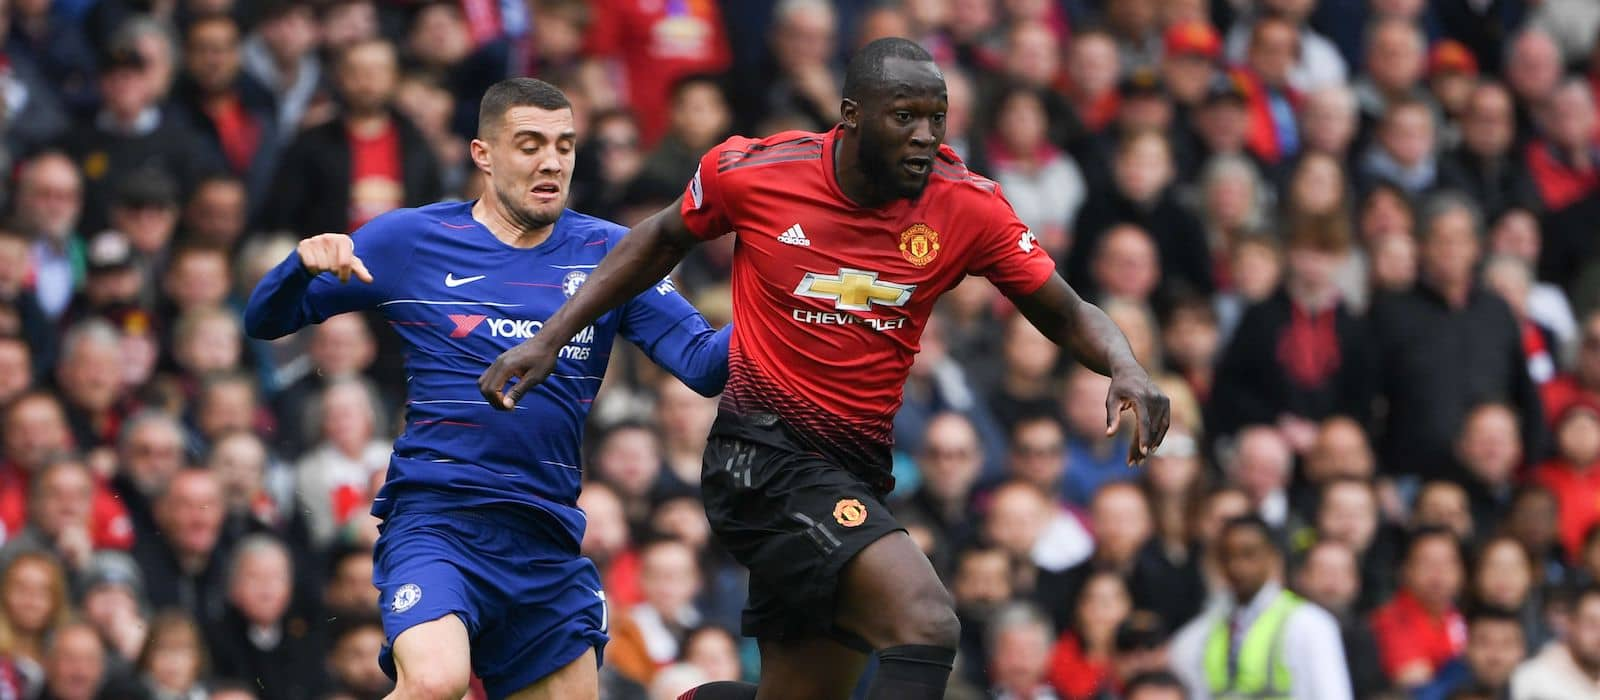 Inter Milan director reveals bid to Manchester United for Romelu Lukaku